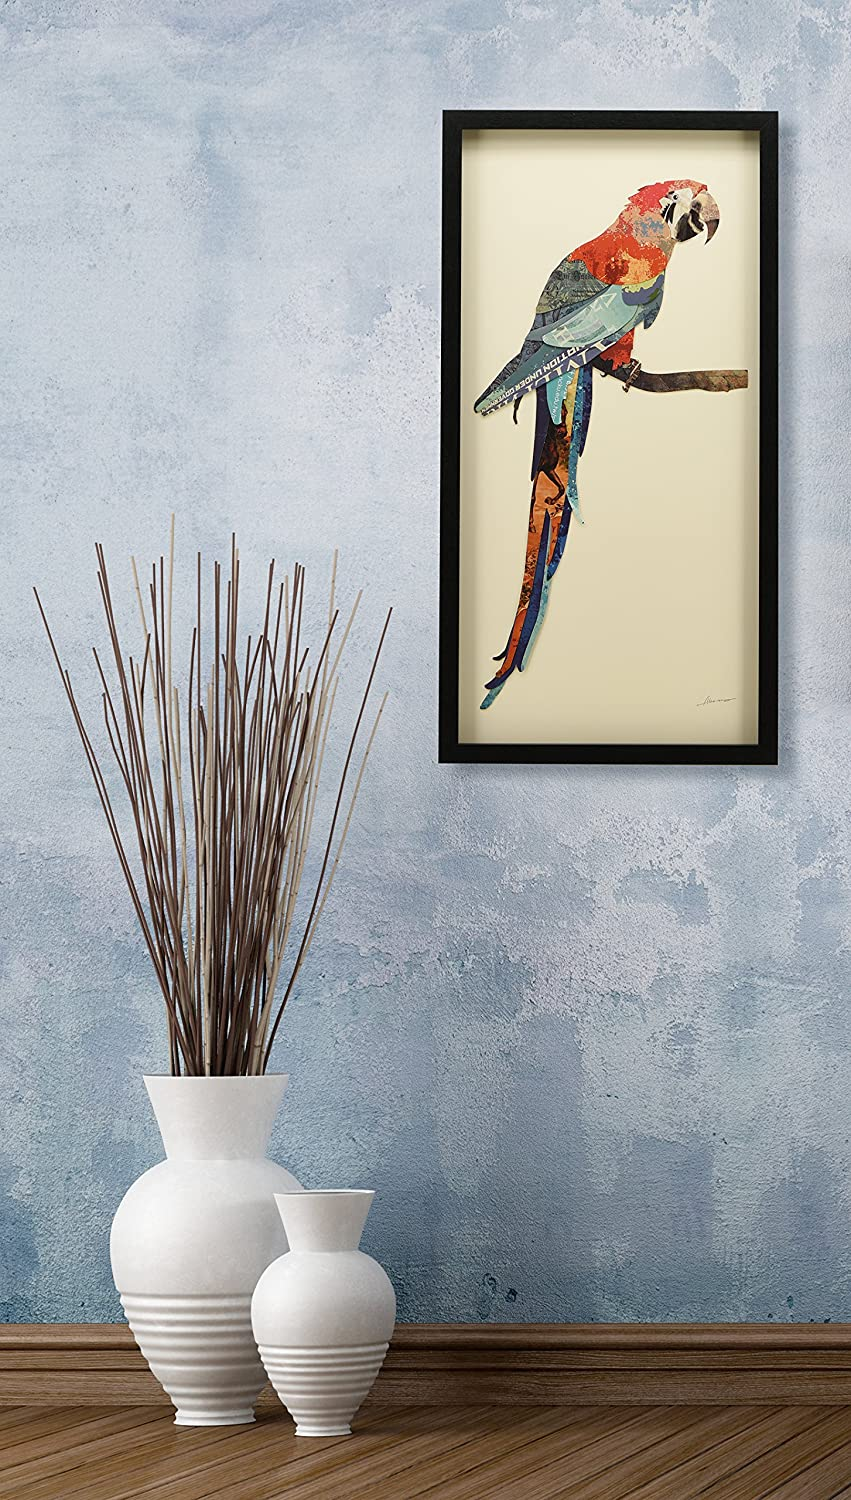 Empire Art Direct American Eagle Dimensional Art Collage Hand Signed by Alex Zeng Framed Graphic Wall Art